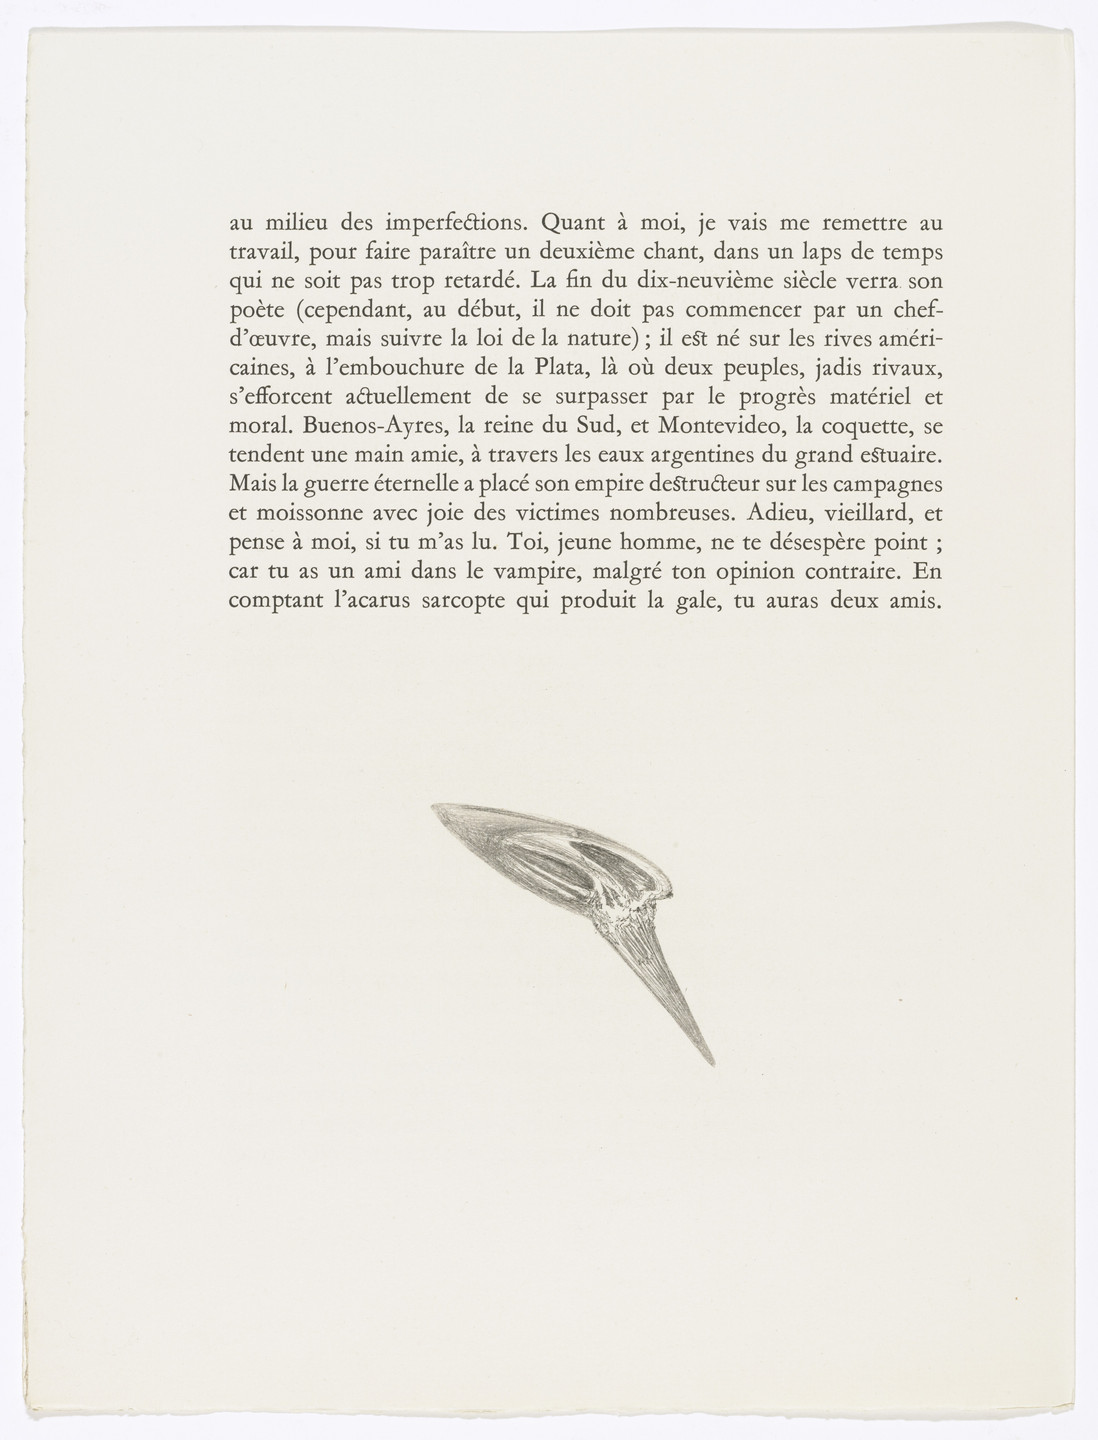 Salvador Dalí. Tailpiece (page 36) from Les Chants de Maldoror (The Songs of Maldoror). 1934